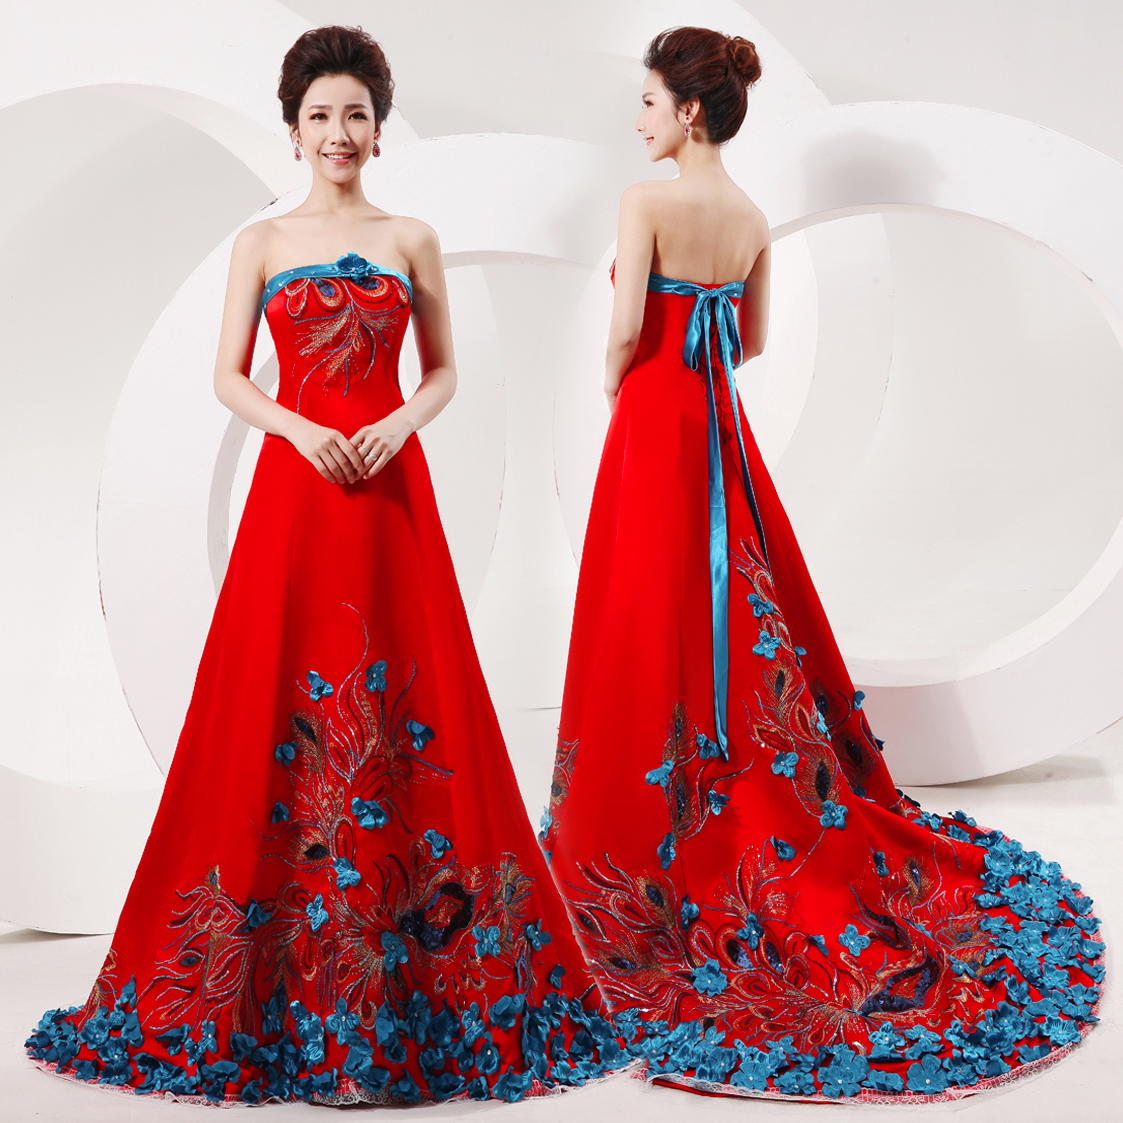 Blue floral wedding dresses google search decadent divas bridal